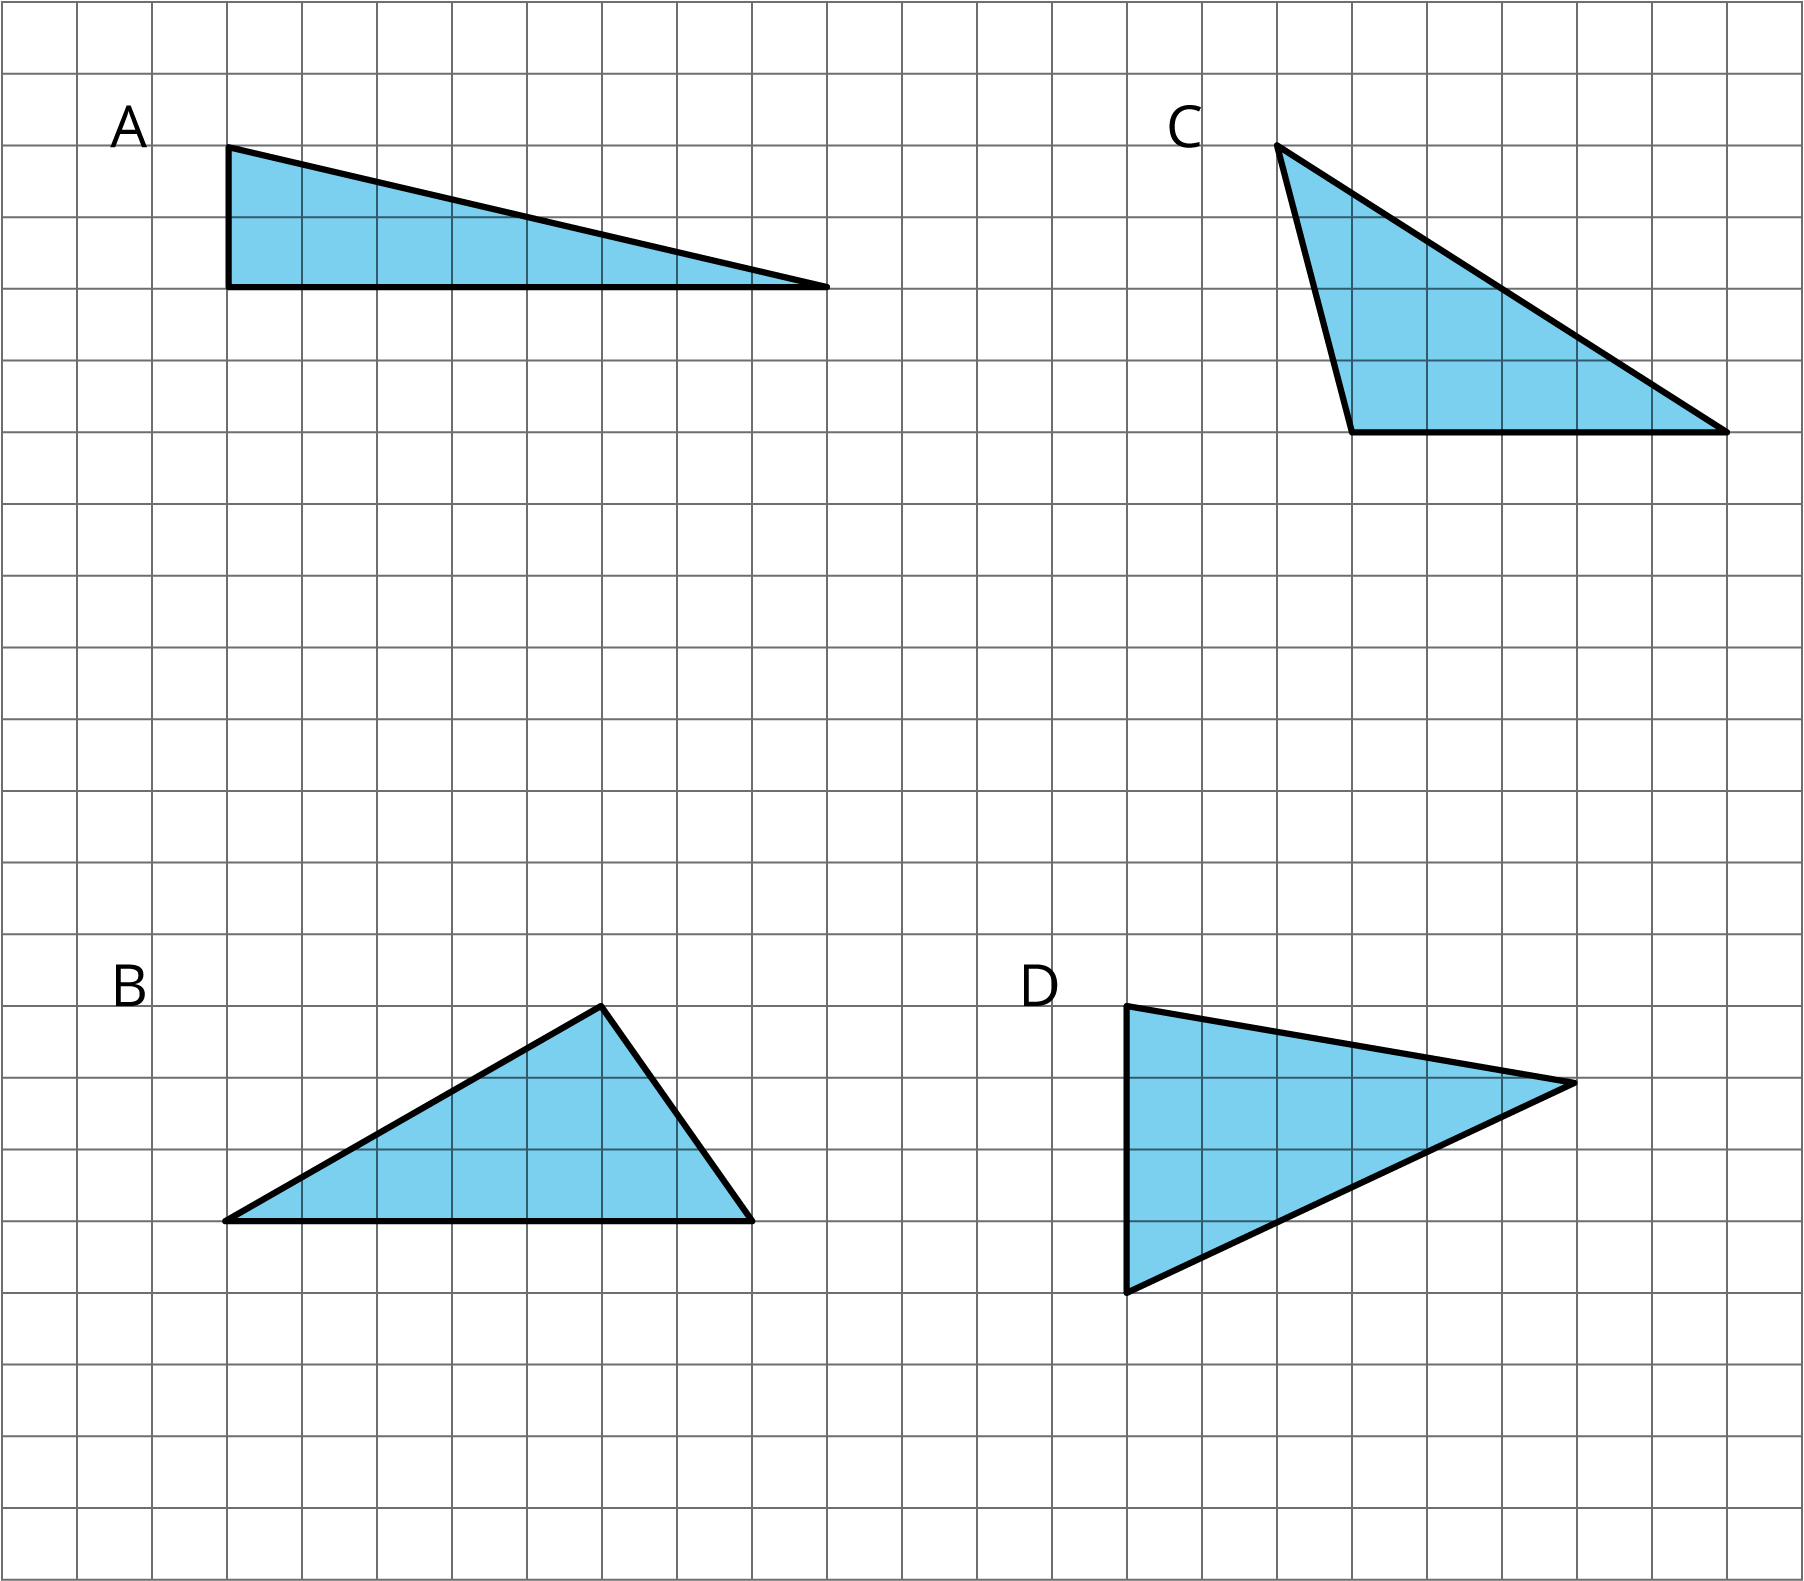 Four triangles on a grid labeled A--D.